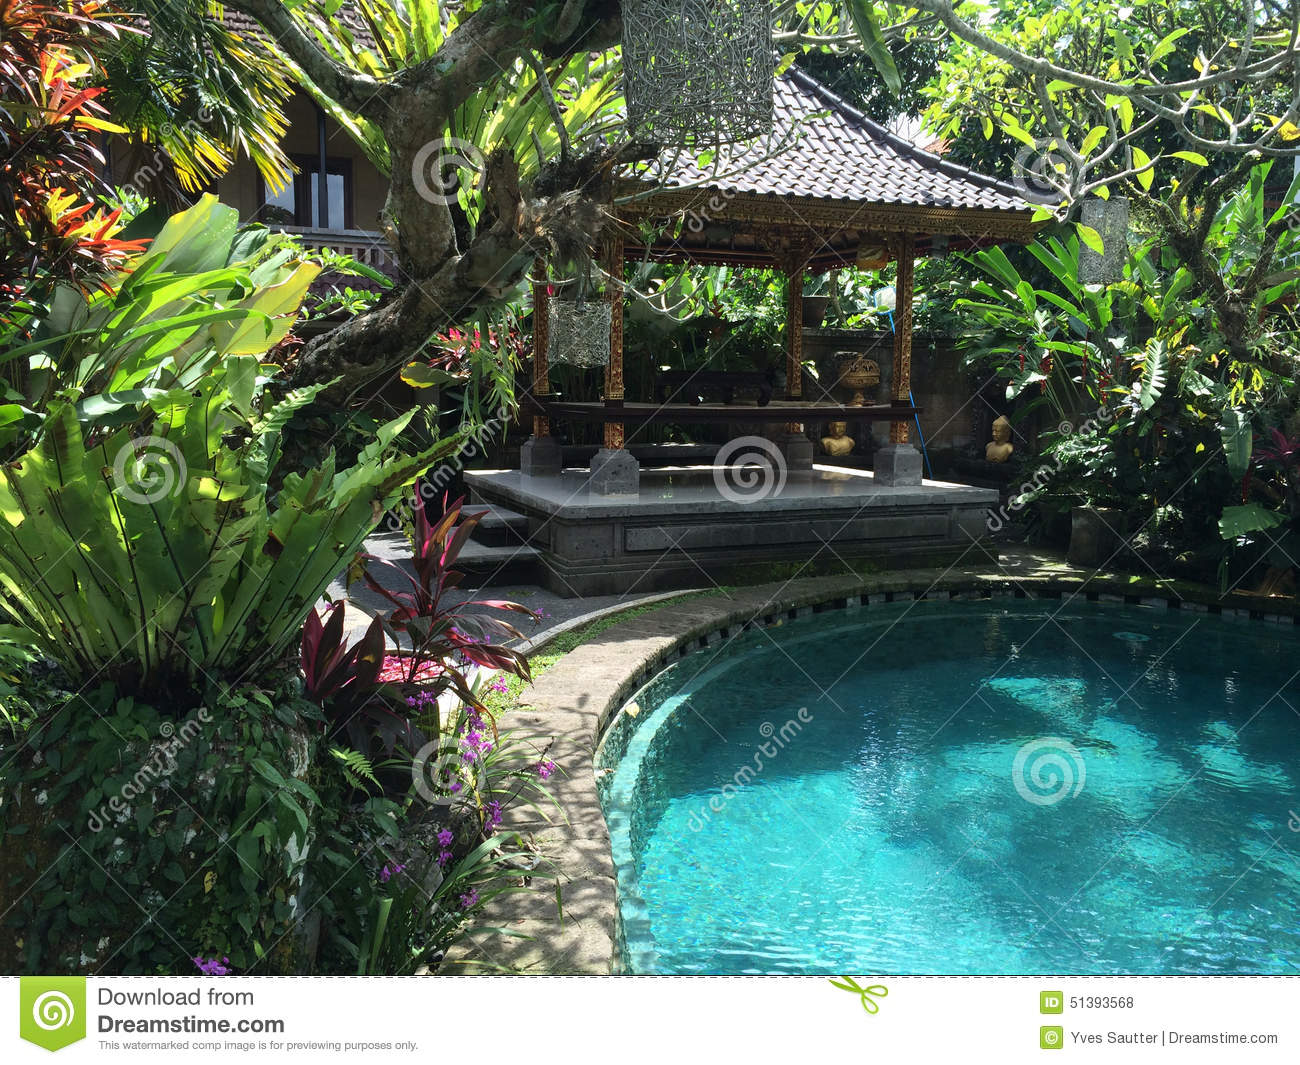 Balinese garden and pool in ubud bali indonesia stock for Green garden pool jakarta